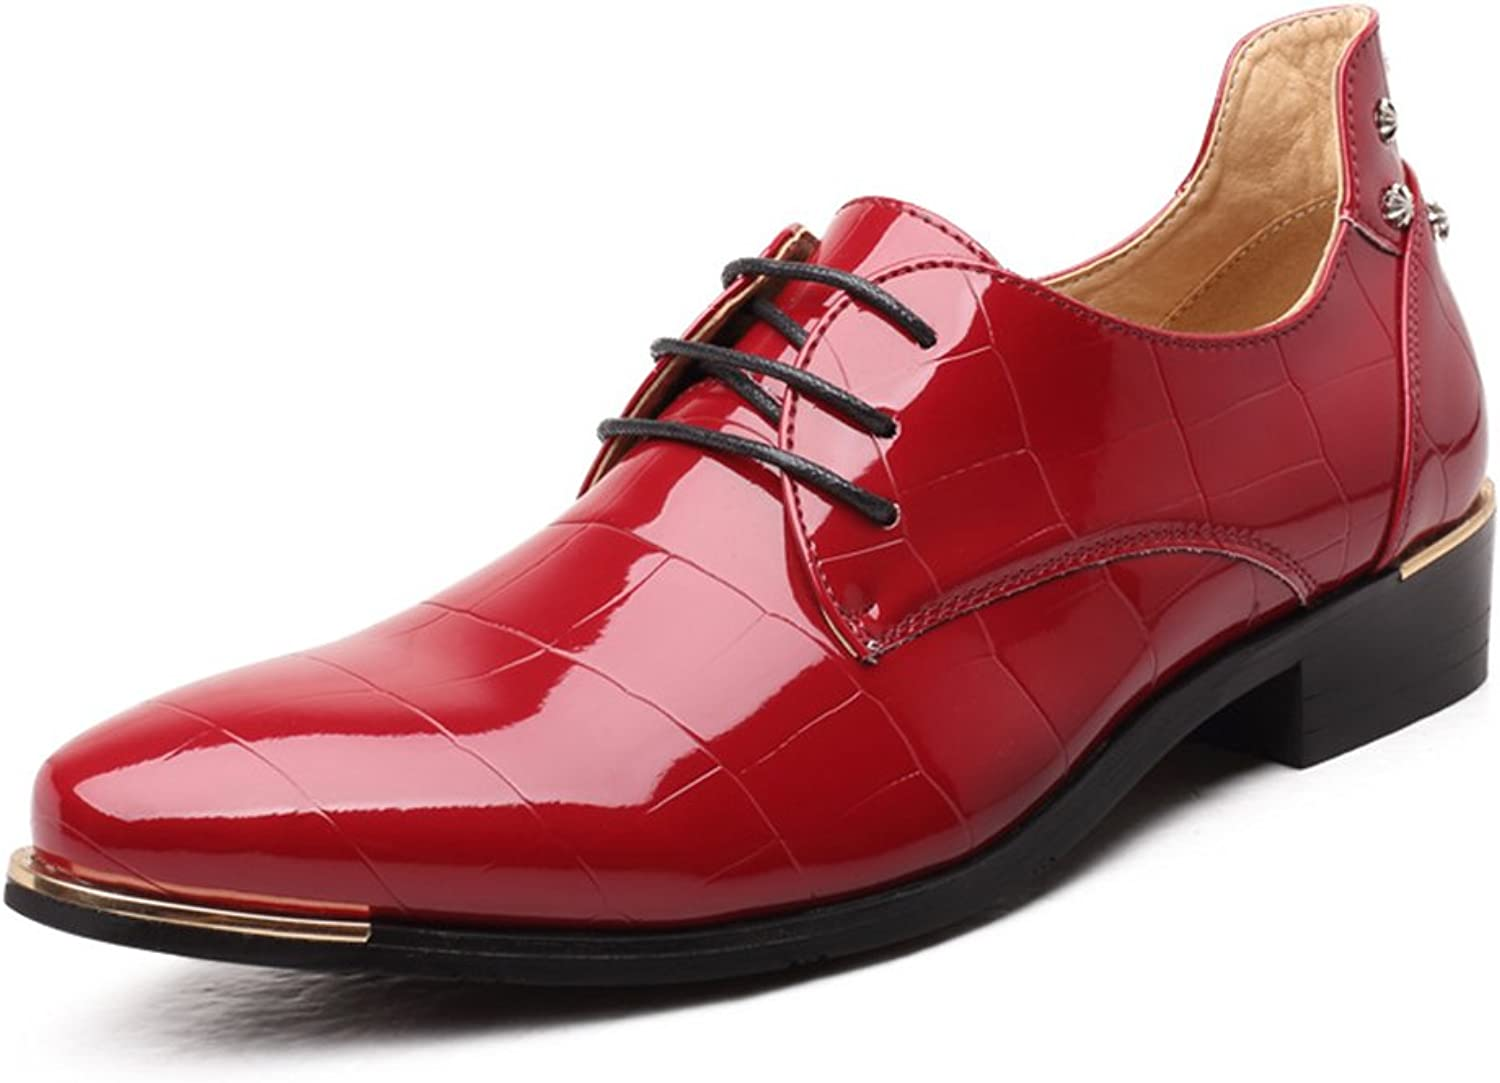 83df0ca424d1b Giles Giles Giles Jones Mens Oxford Dress shoes - Pointed Toe Lace ...